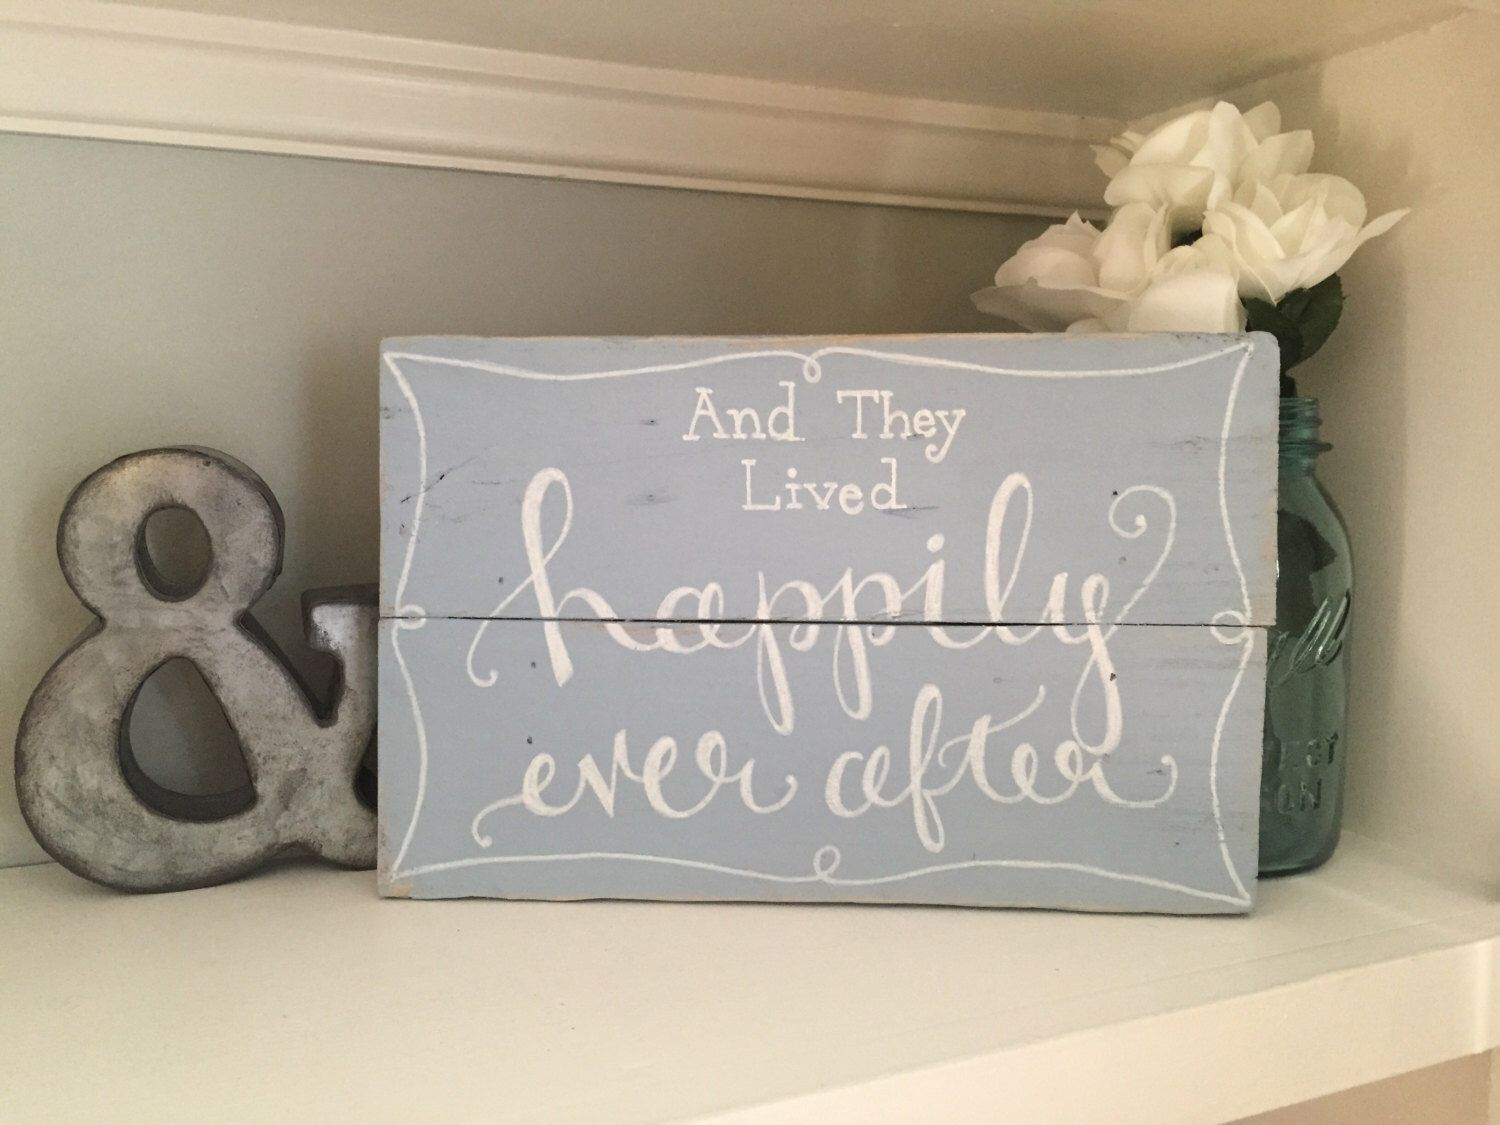 And They Lived Happily Ever After Sign ~ Disney Wedding/ Anniversary Gift, Reclaimed Wood, Rustic Hand Painted Sign, Rustic Home Decor by SweetChalkDesigns on Etsy https://www.etsy.com/listing/240016074/and-they-lived-happily-ever-after-sign